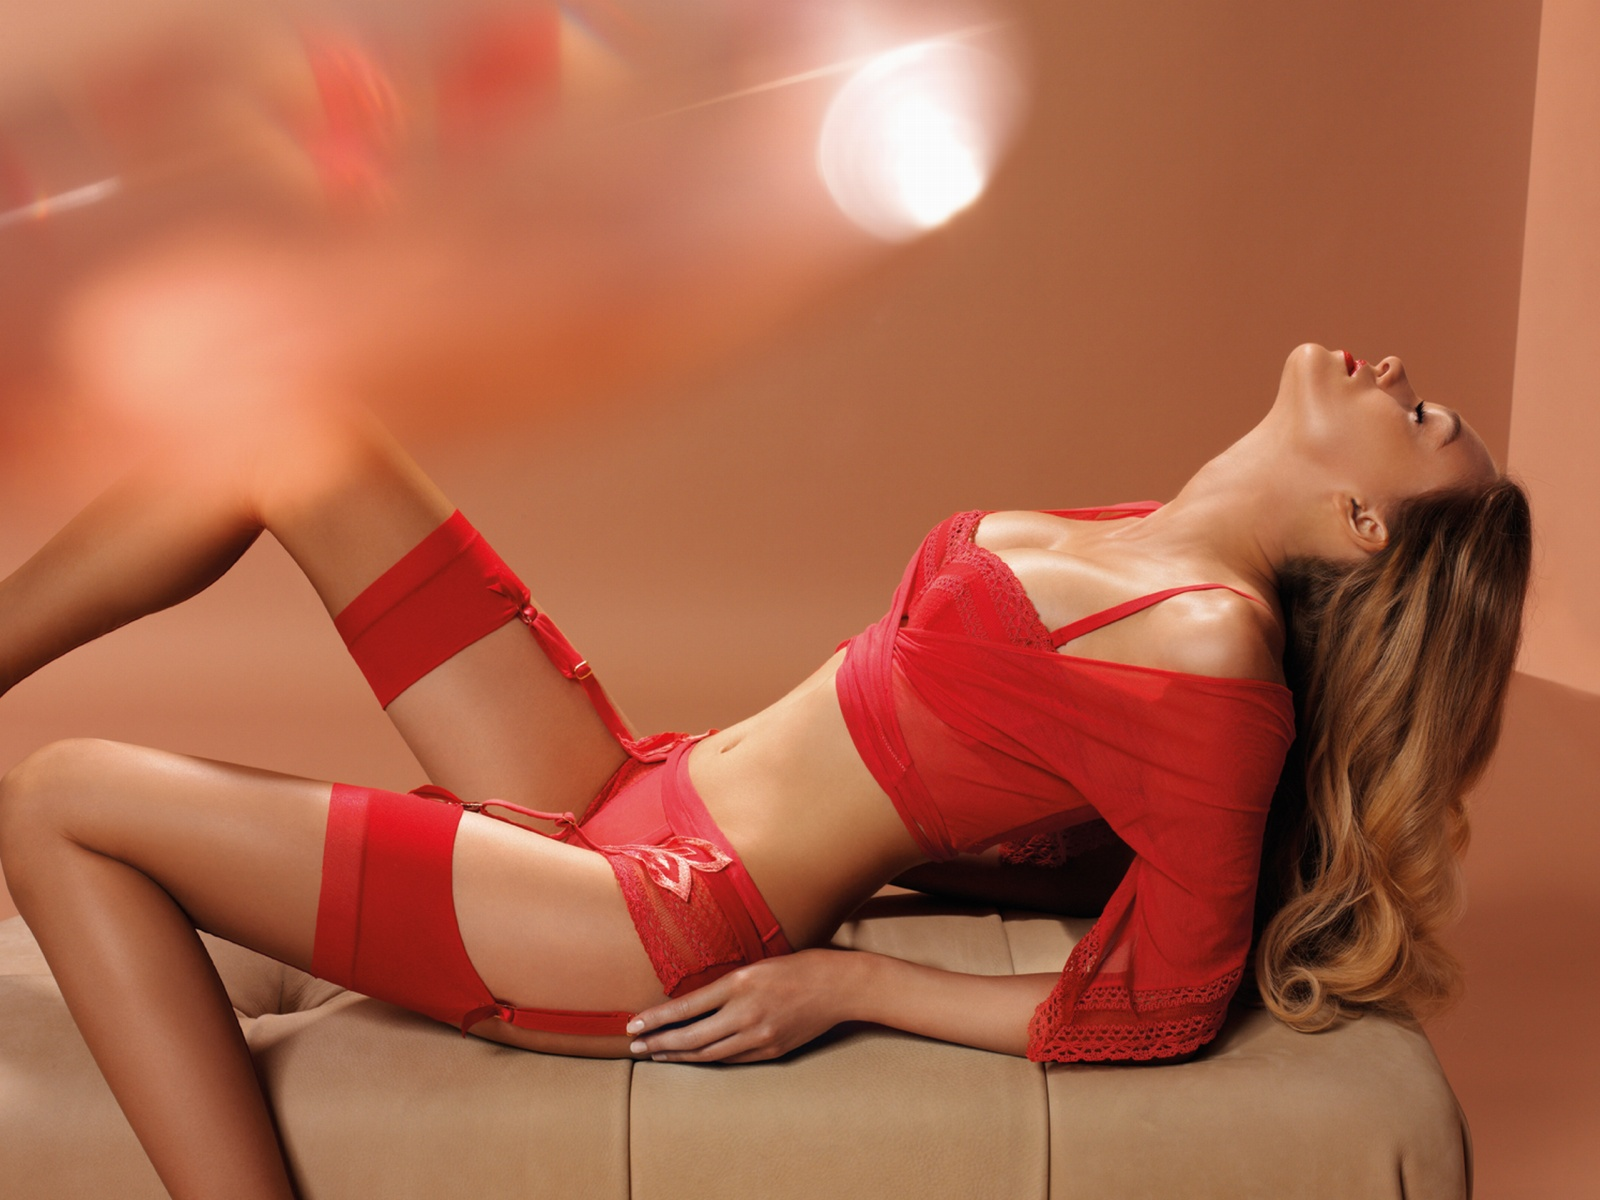 Red Bra With Red Camisol Knickerts And Suspenders And Red Stockings Smal Light Flower Motif